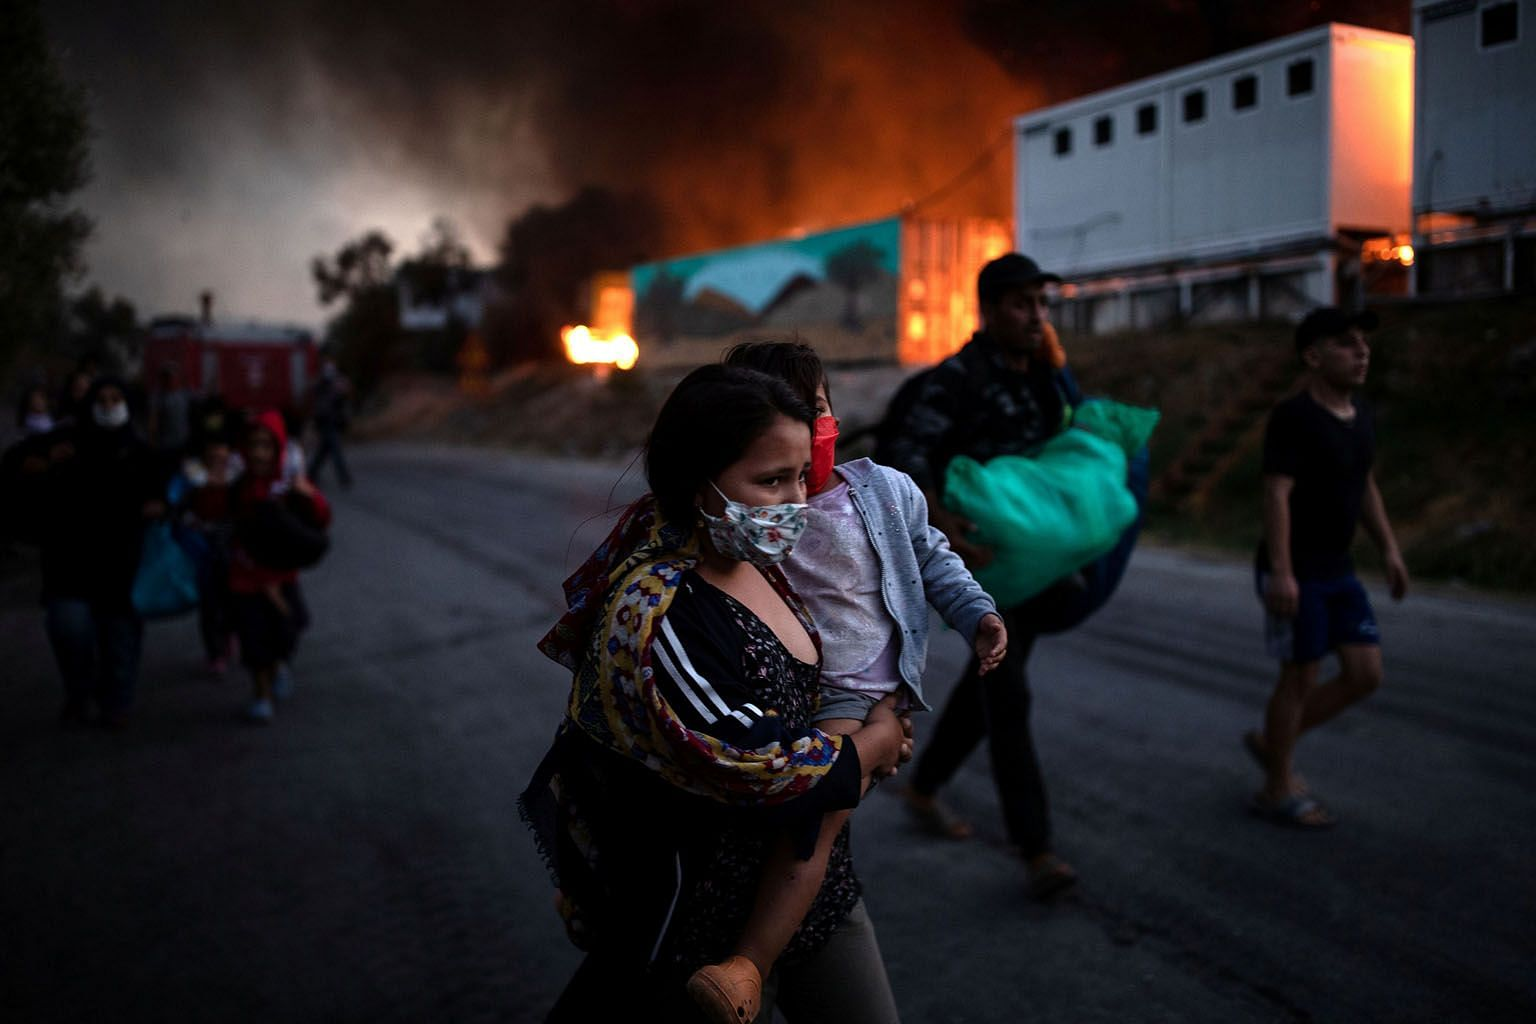 Refugees and migrants fleeing the fire at the Moria camp on the Greek island of Lesbos on Wednesday. The EU's migrant dilemma and consequent humanitarian disasters, the writer says, will not be fixed unless and until the bloc strong-arms its saboteur